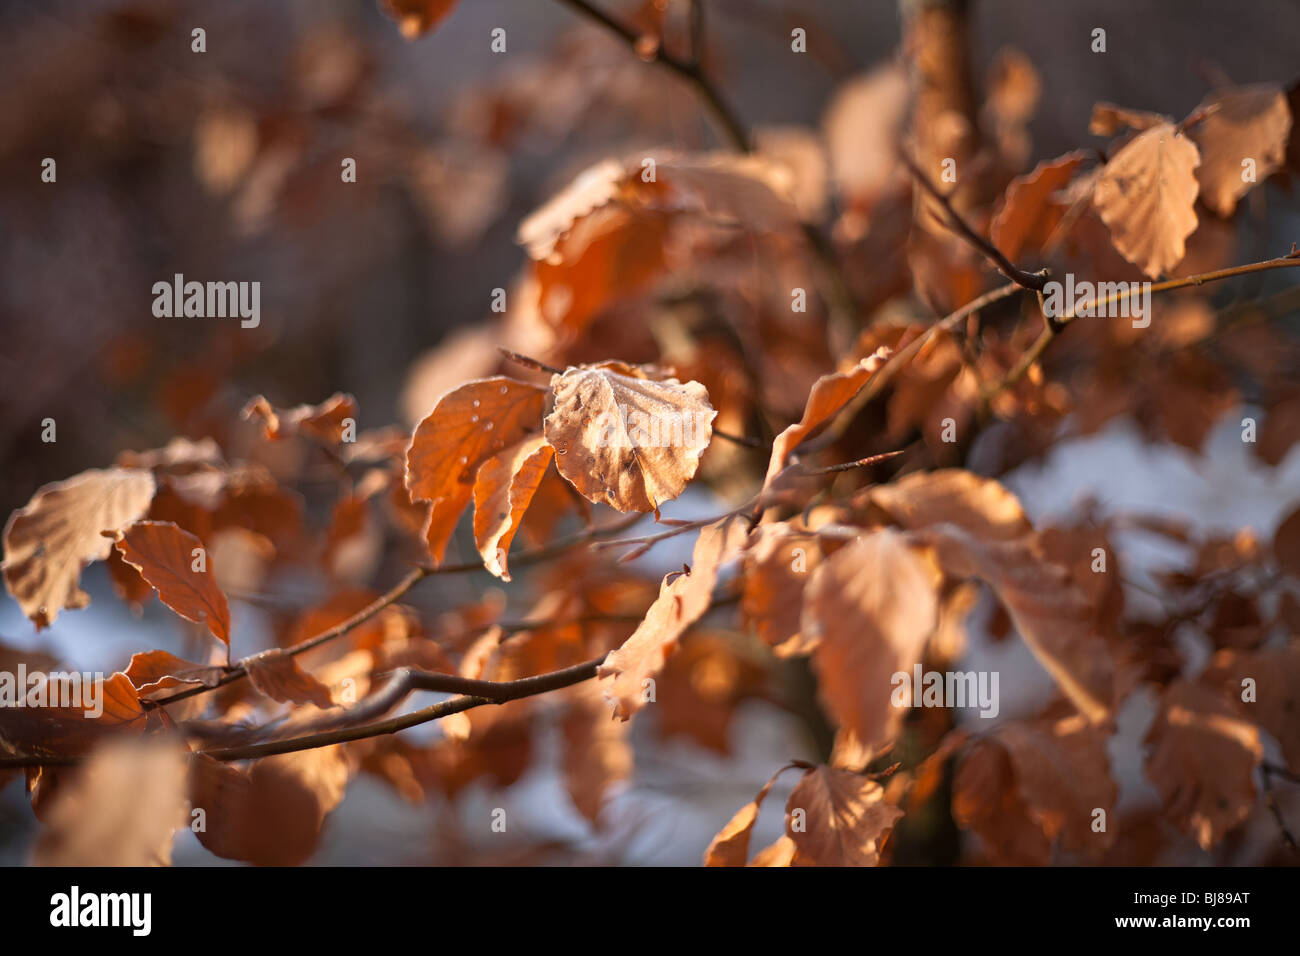 Withered leafs on a tree in wintertime. Shallow focus. - Stock Image